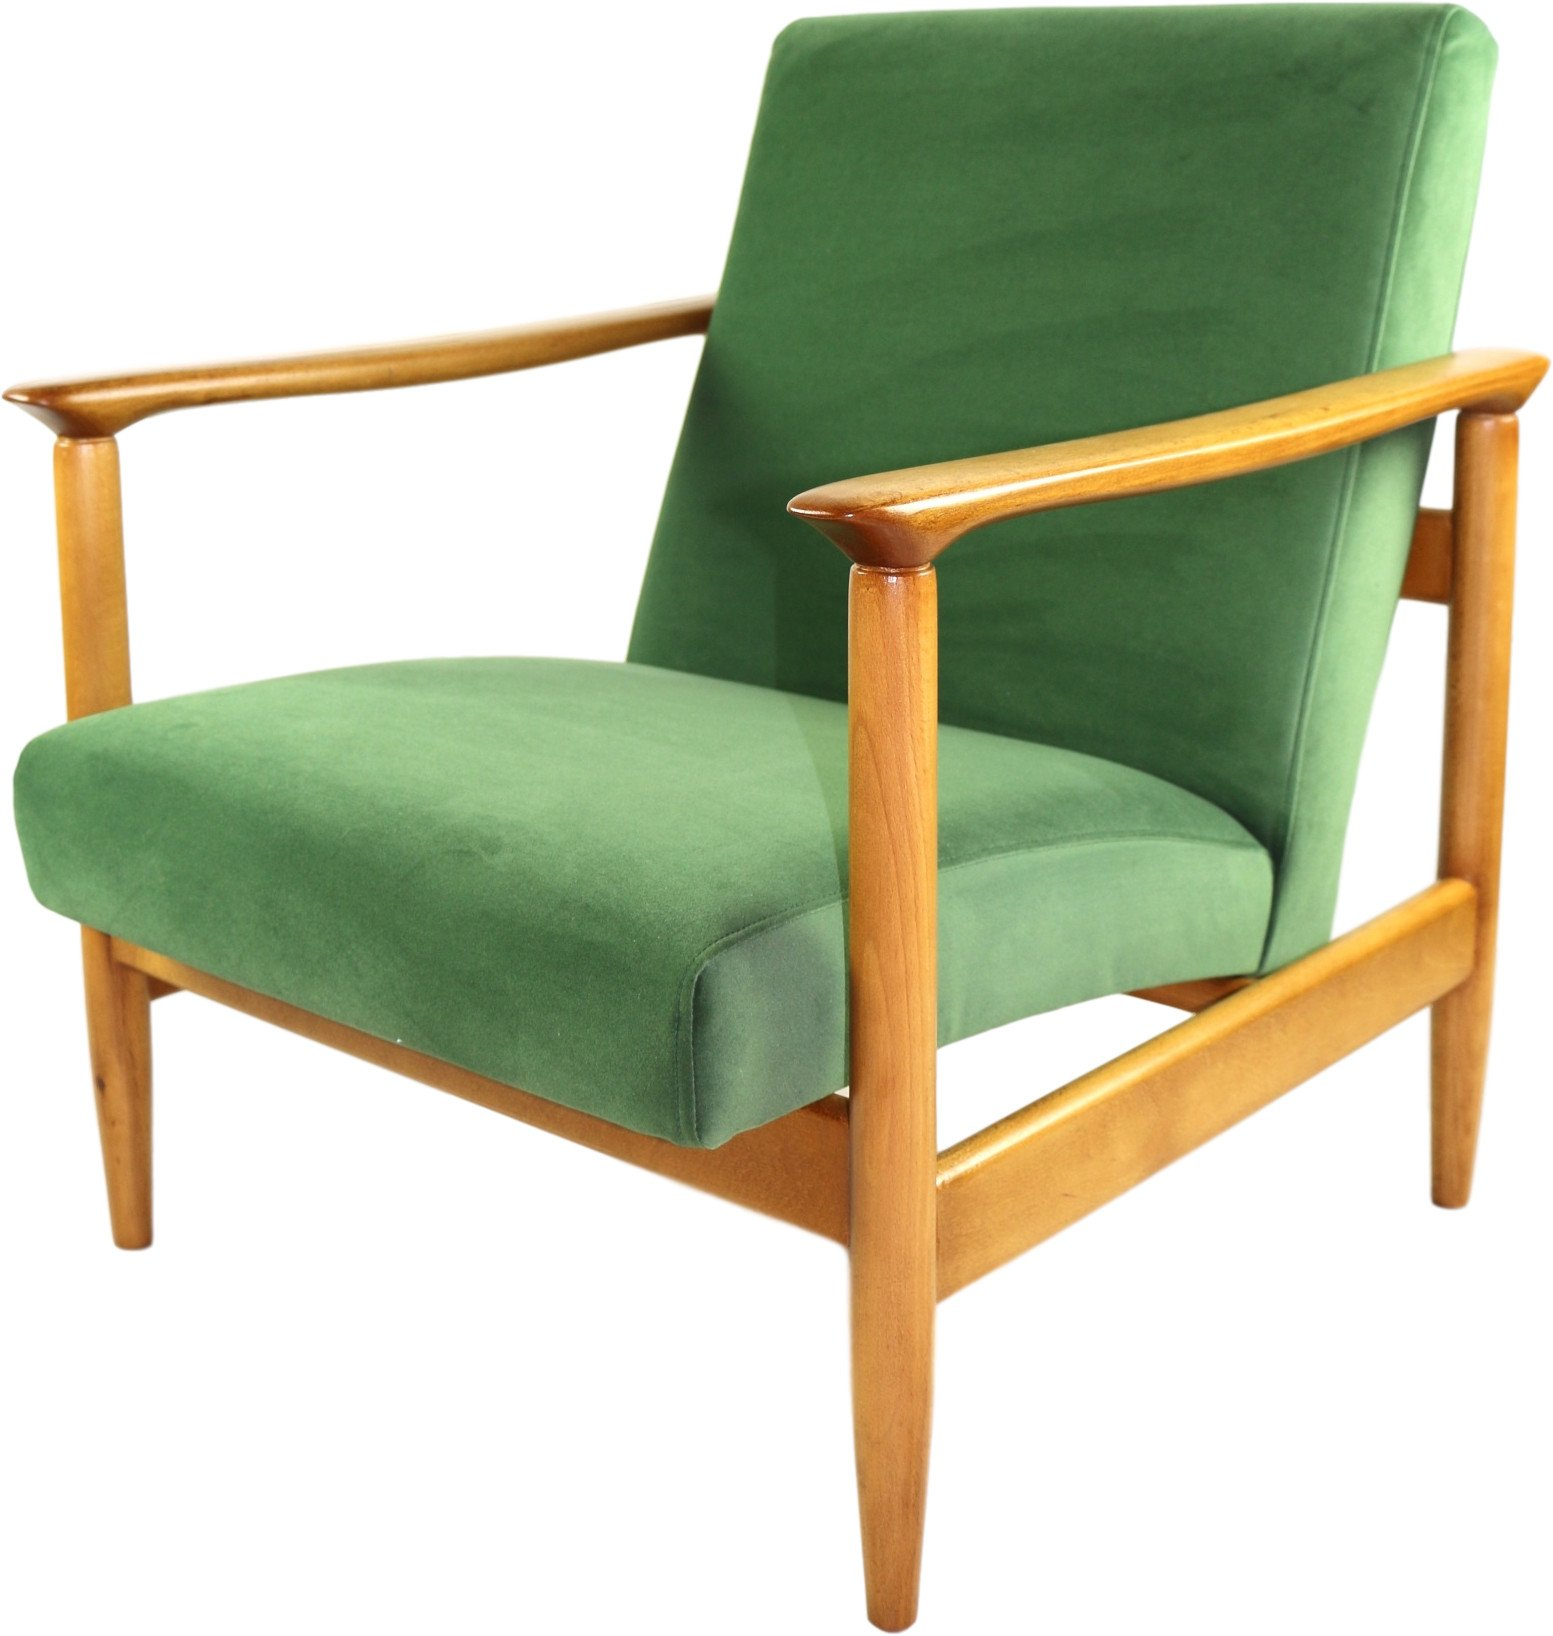 GFM-142 Armchair by E. Homa, Poland, 1970s